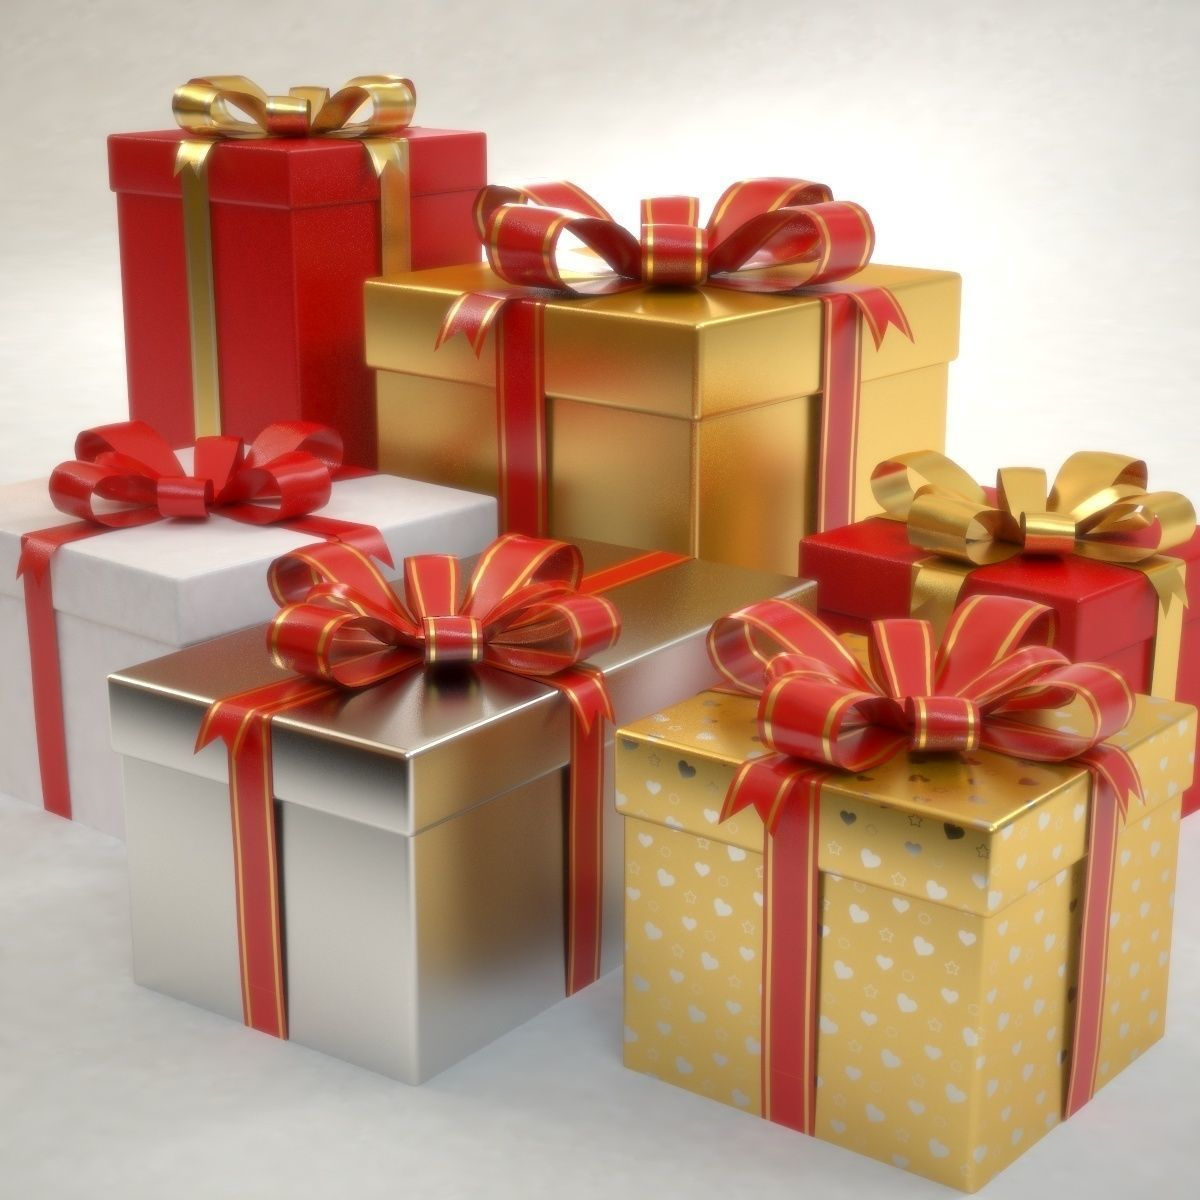 D chrismas gifts by vikibwire docean